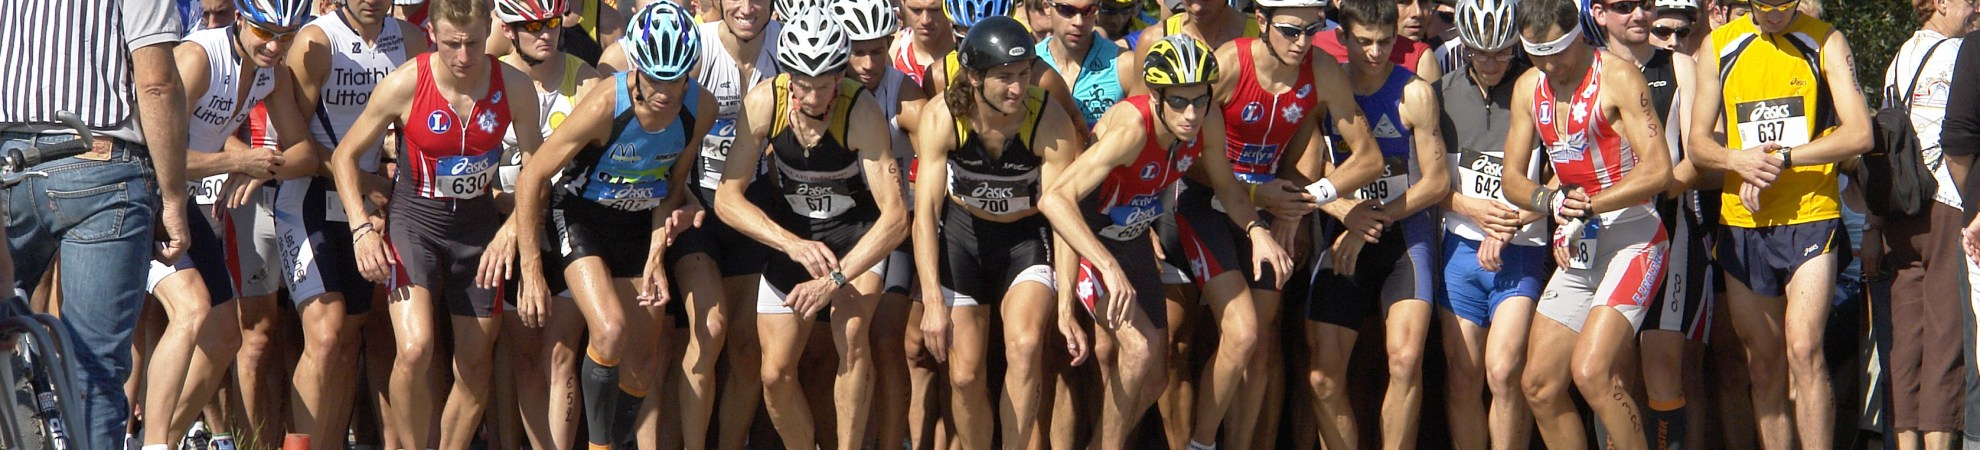 Triathlons for Beginners: 5 of the Best